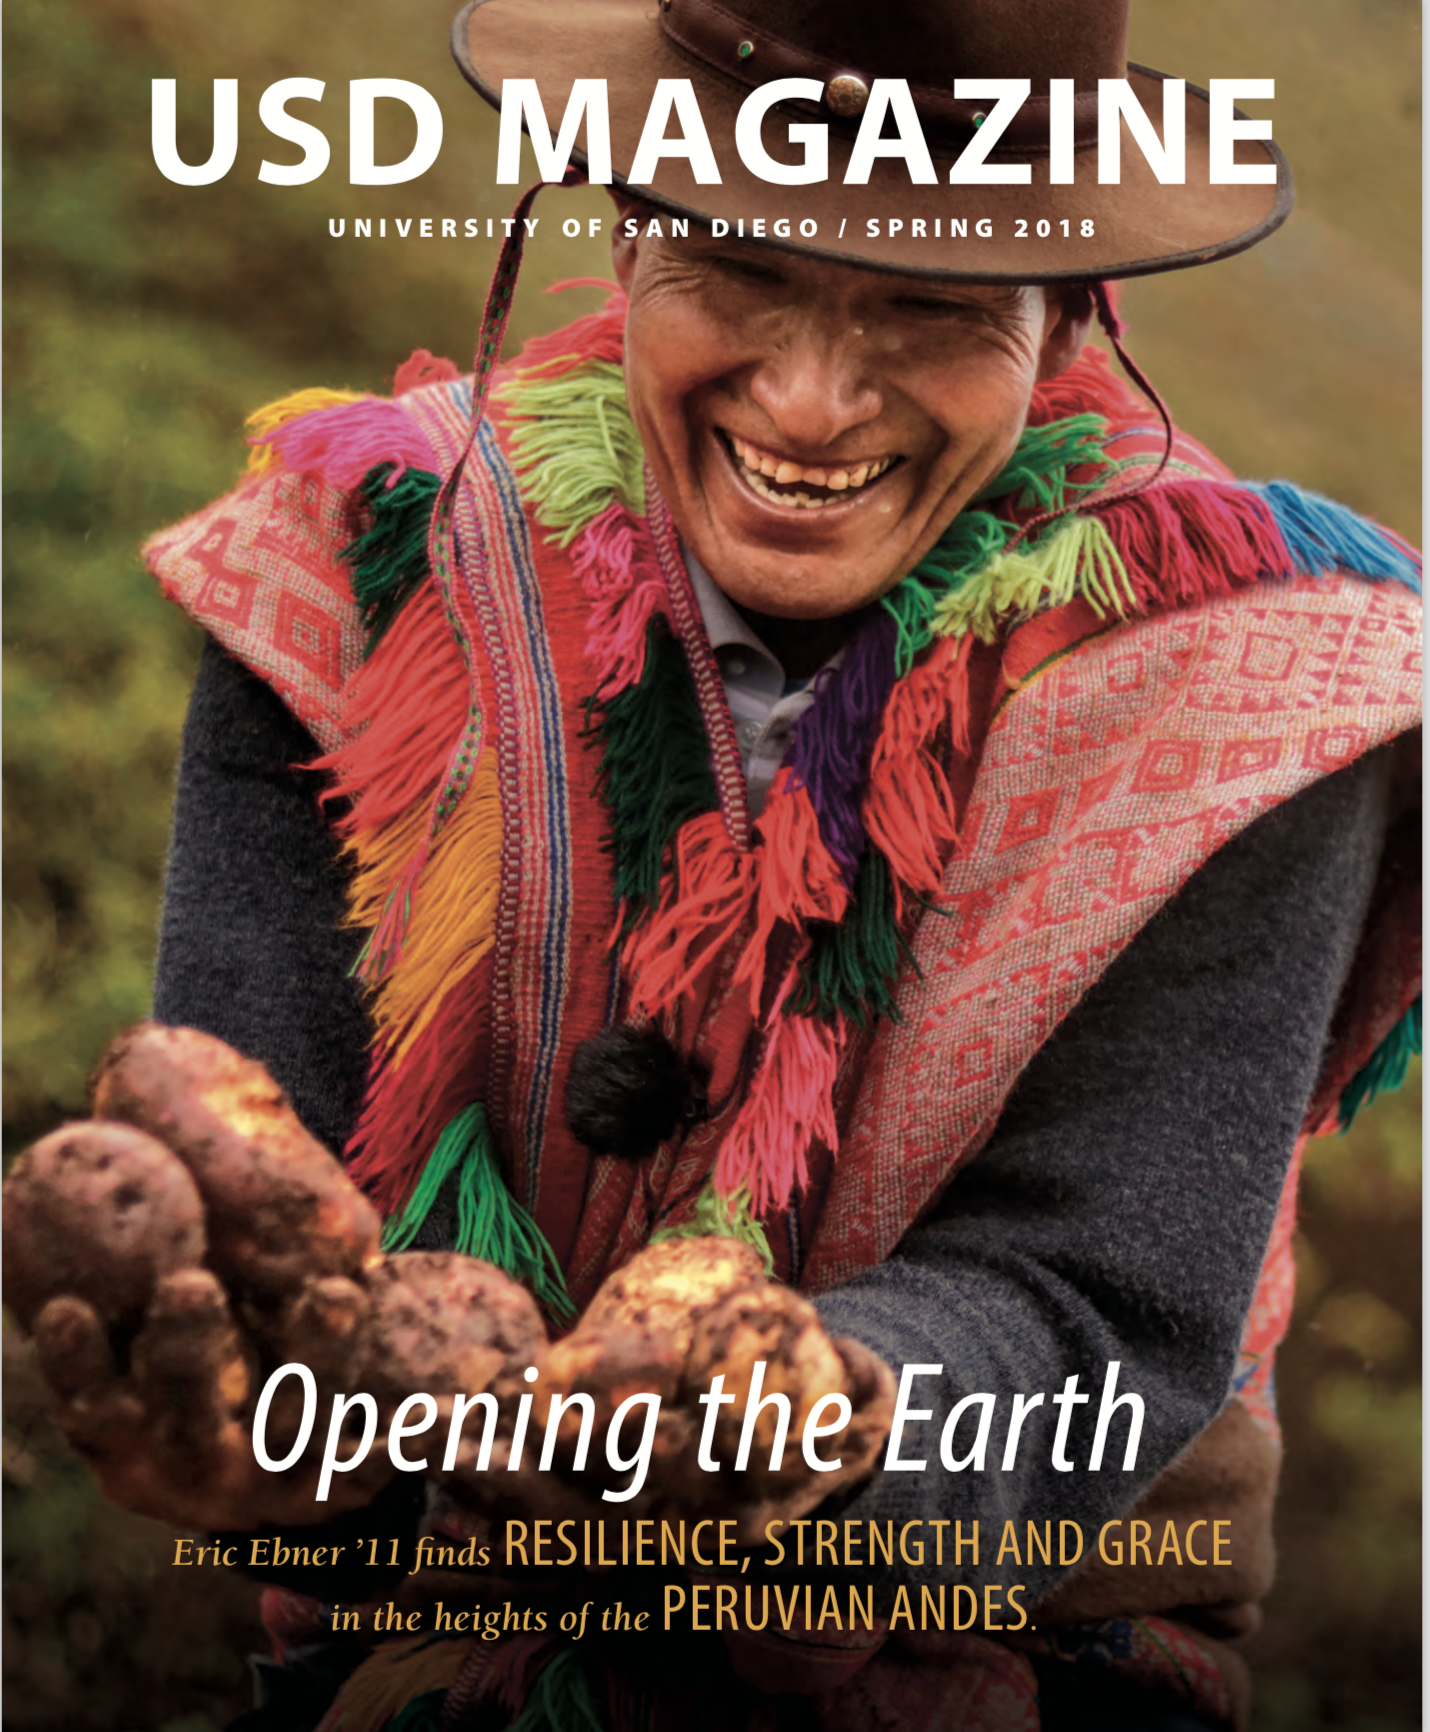 Opening the Earth was featured in the University of San Diego's USD Magazine Spring 2018 edition. Click below to read.